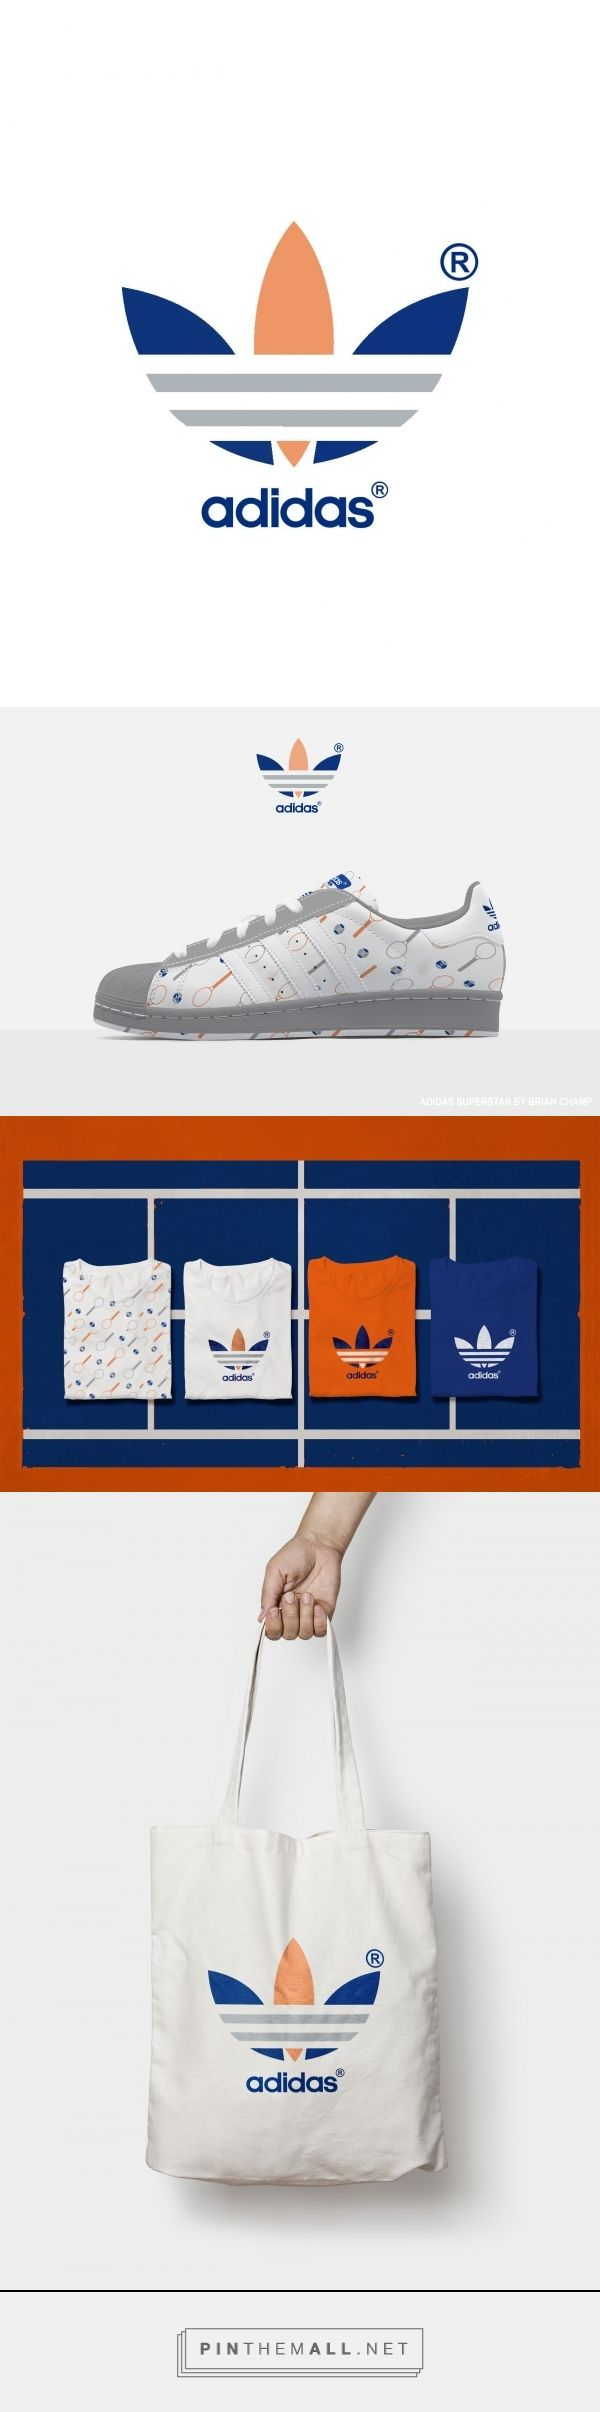 Adidas Superstar Concept by Brian Champ